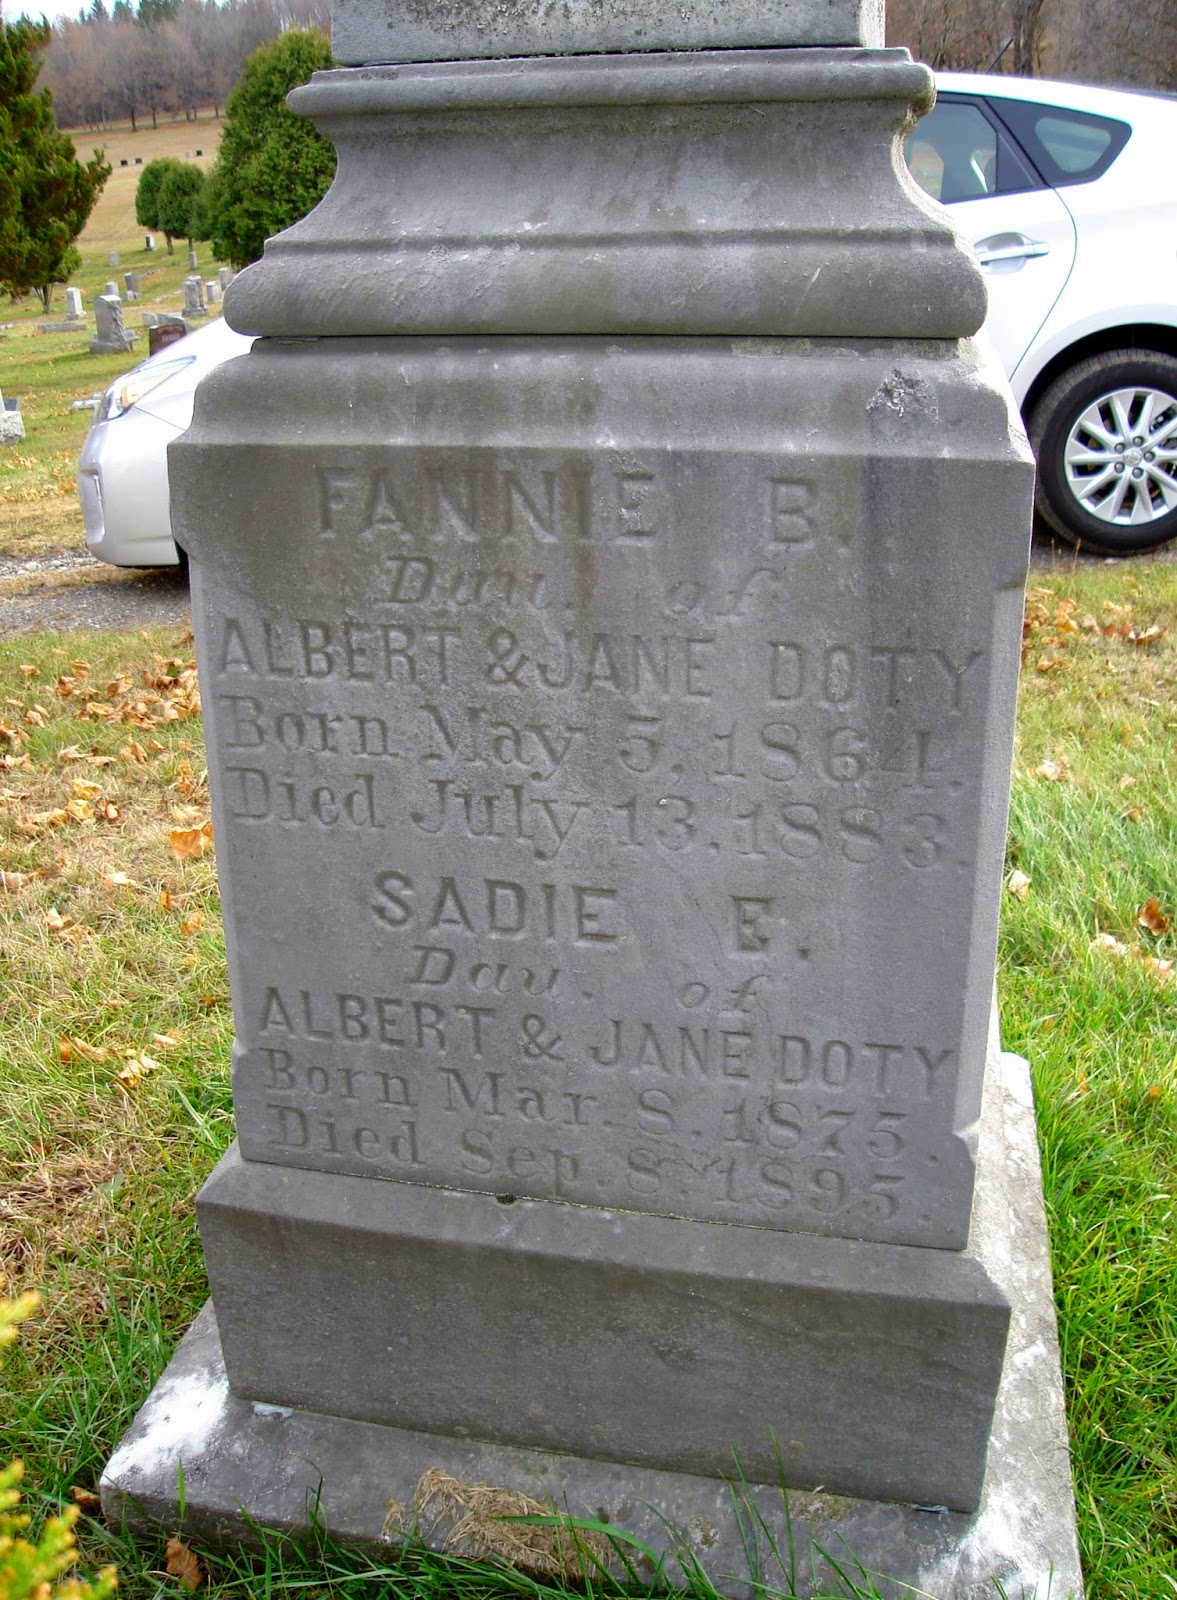 Fannie B. and Sadie E. Doty Tombstone, Wallkill Cemetery, Middletown, NY